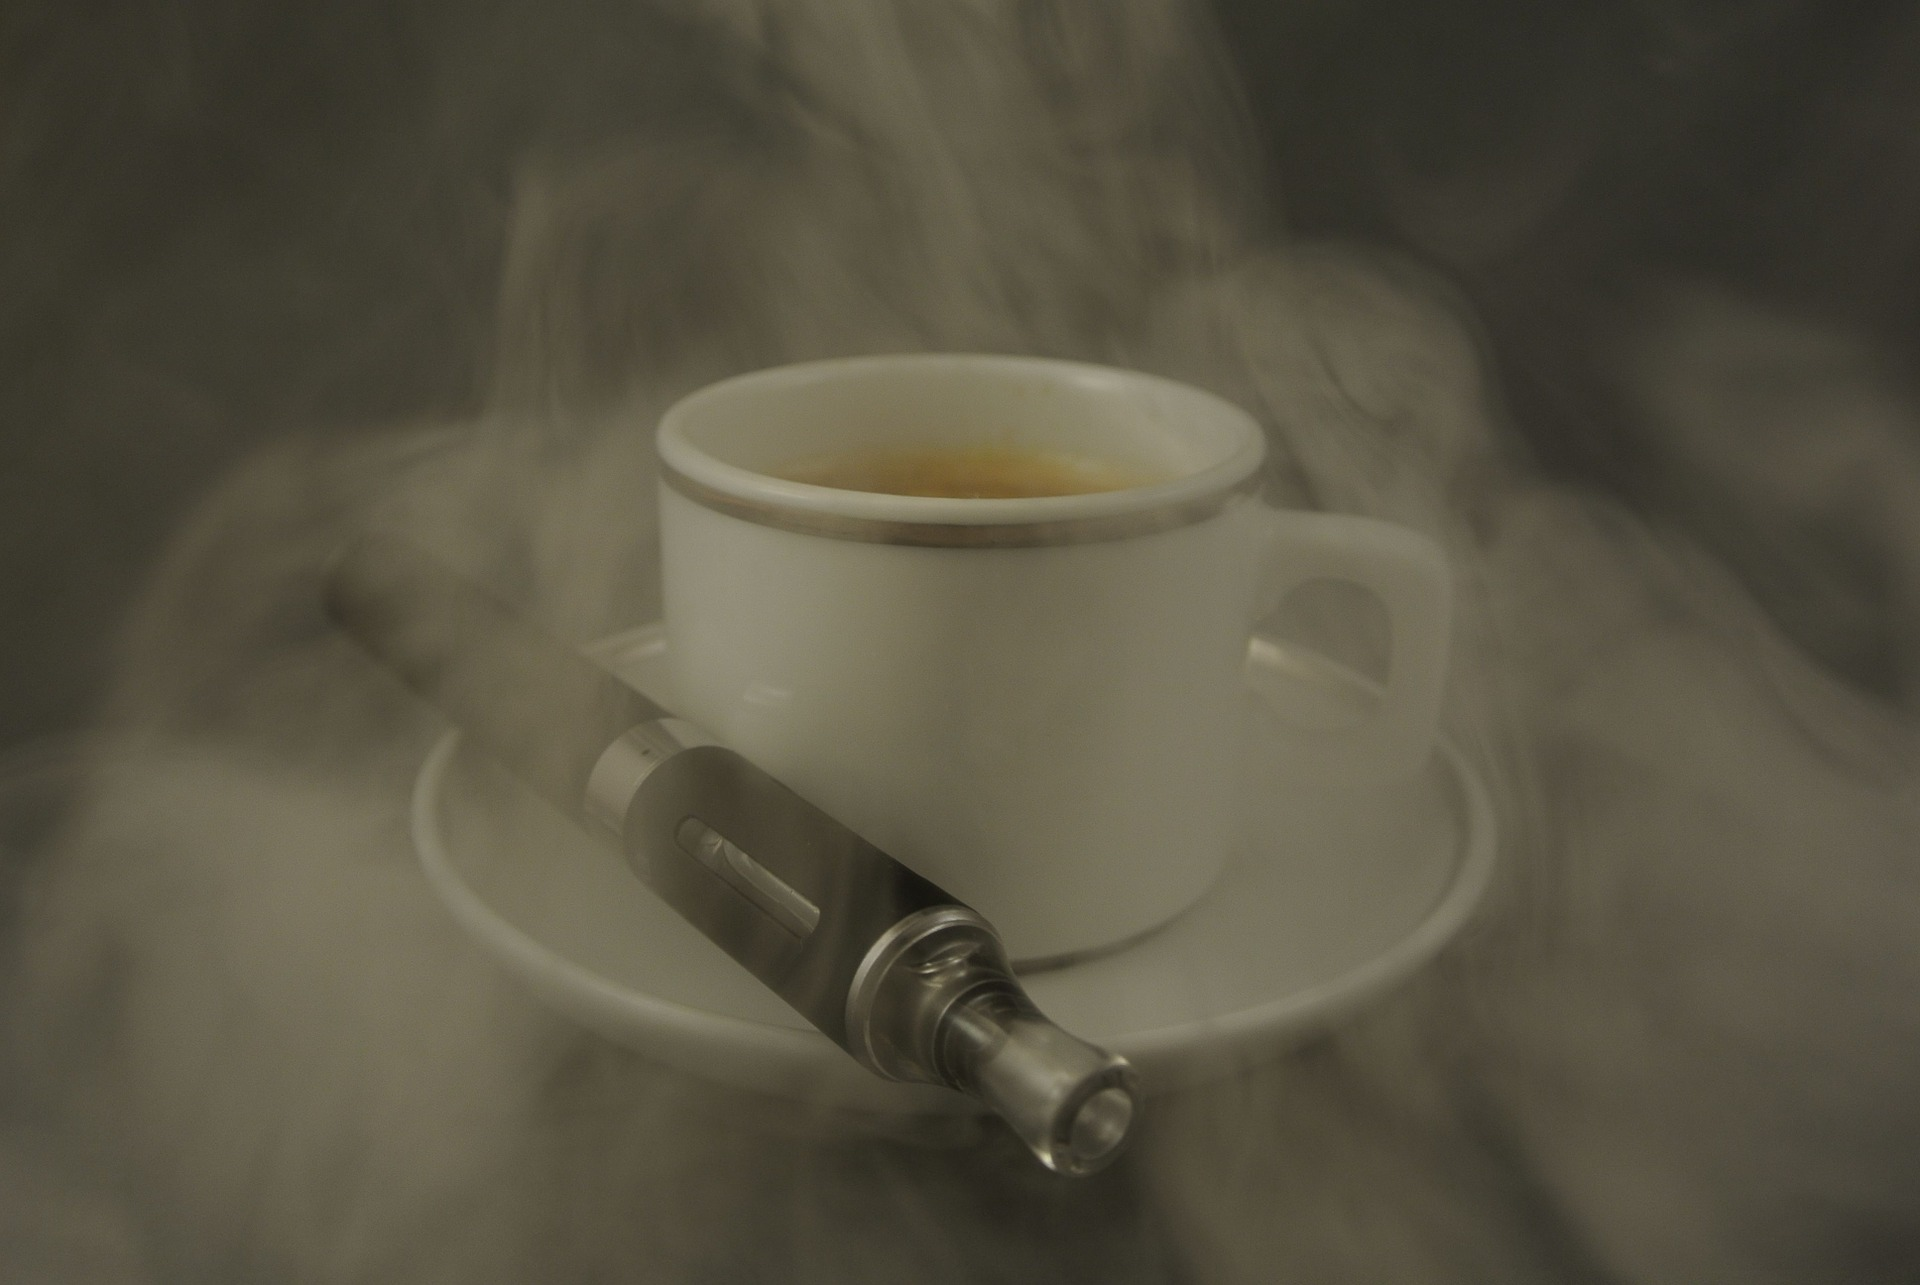 e-cig and coffee